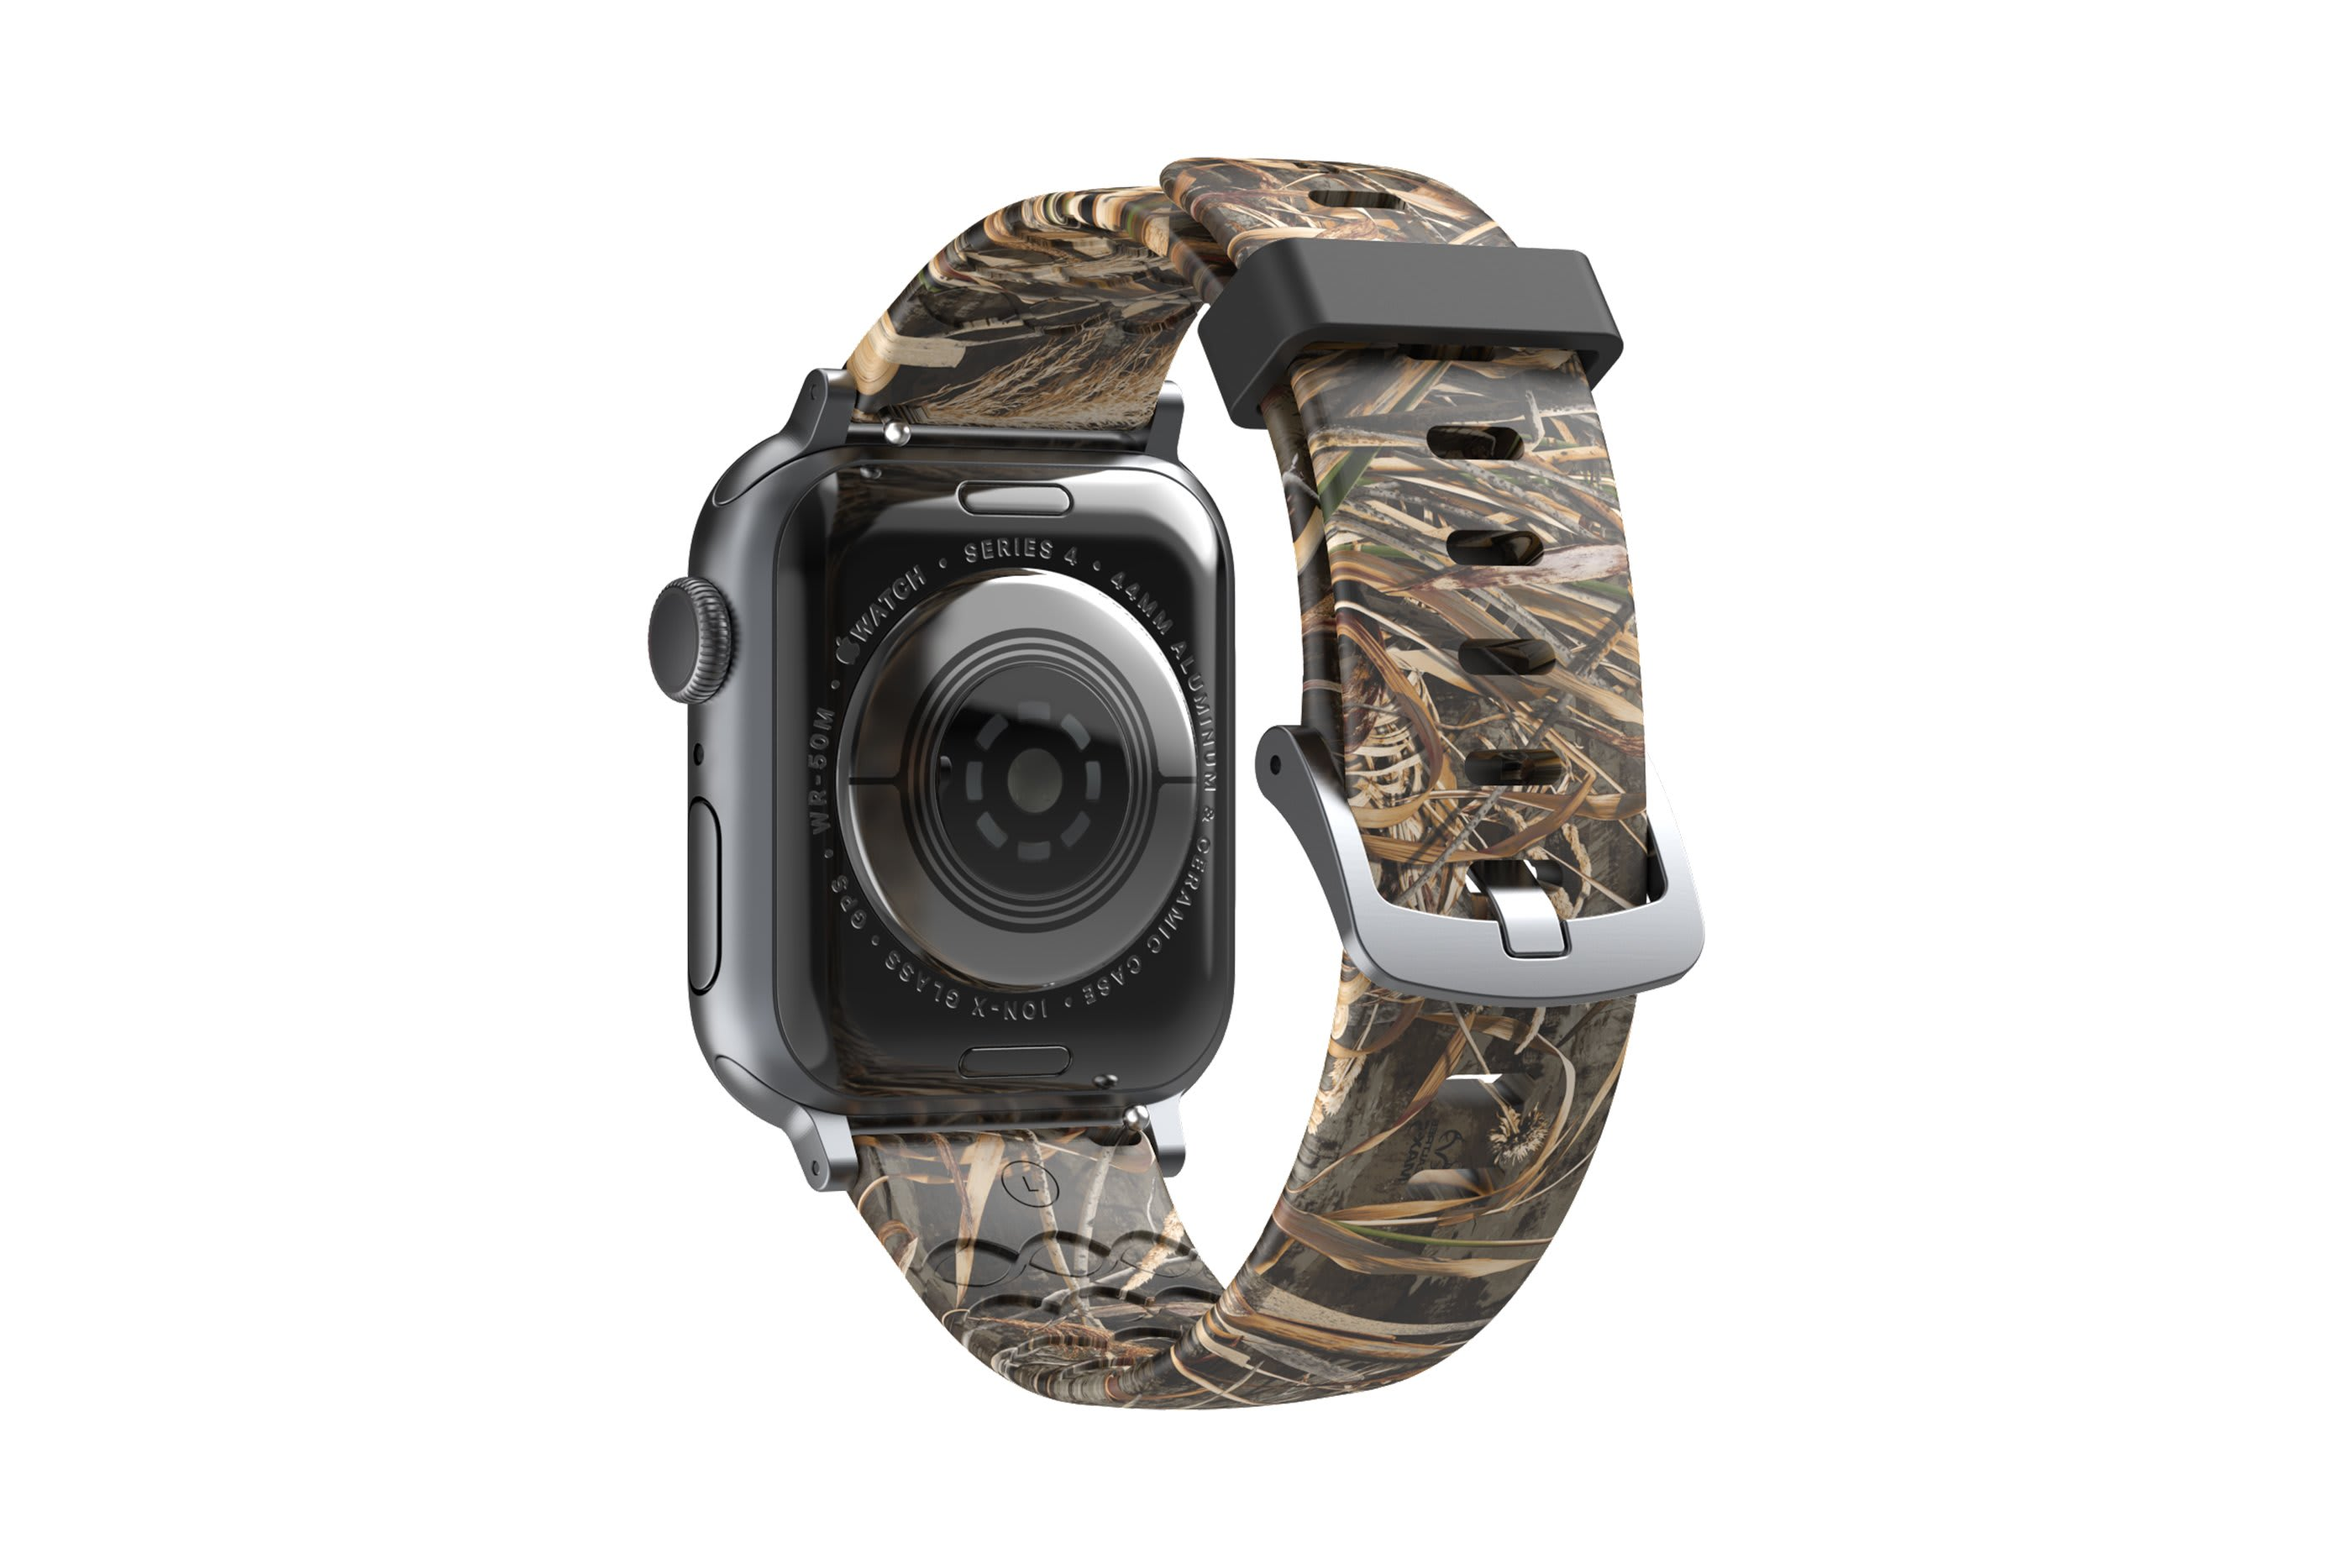 Realtree Max 5 Apple Watch Band with silver hardware viewed from top down